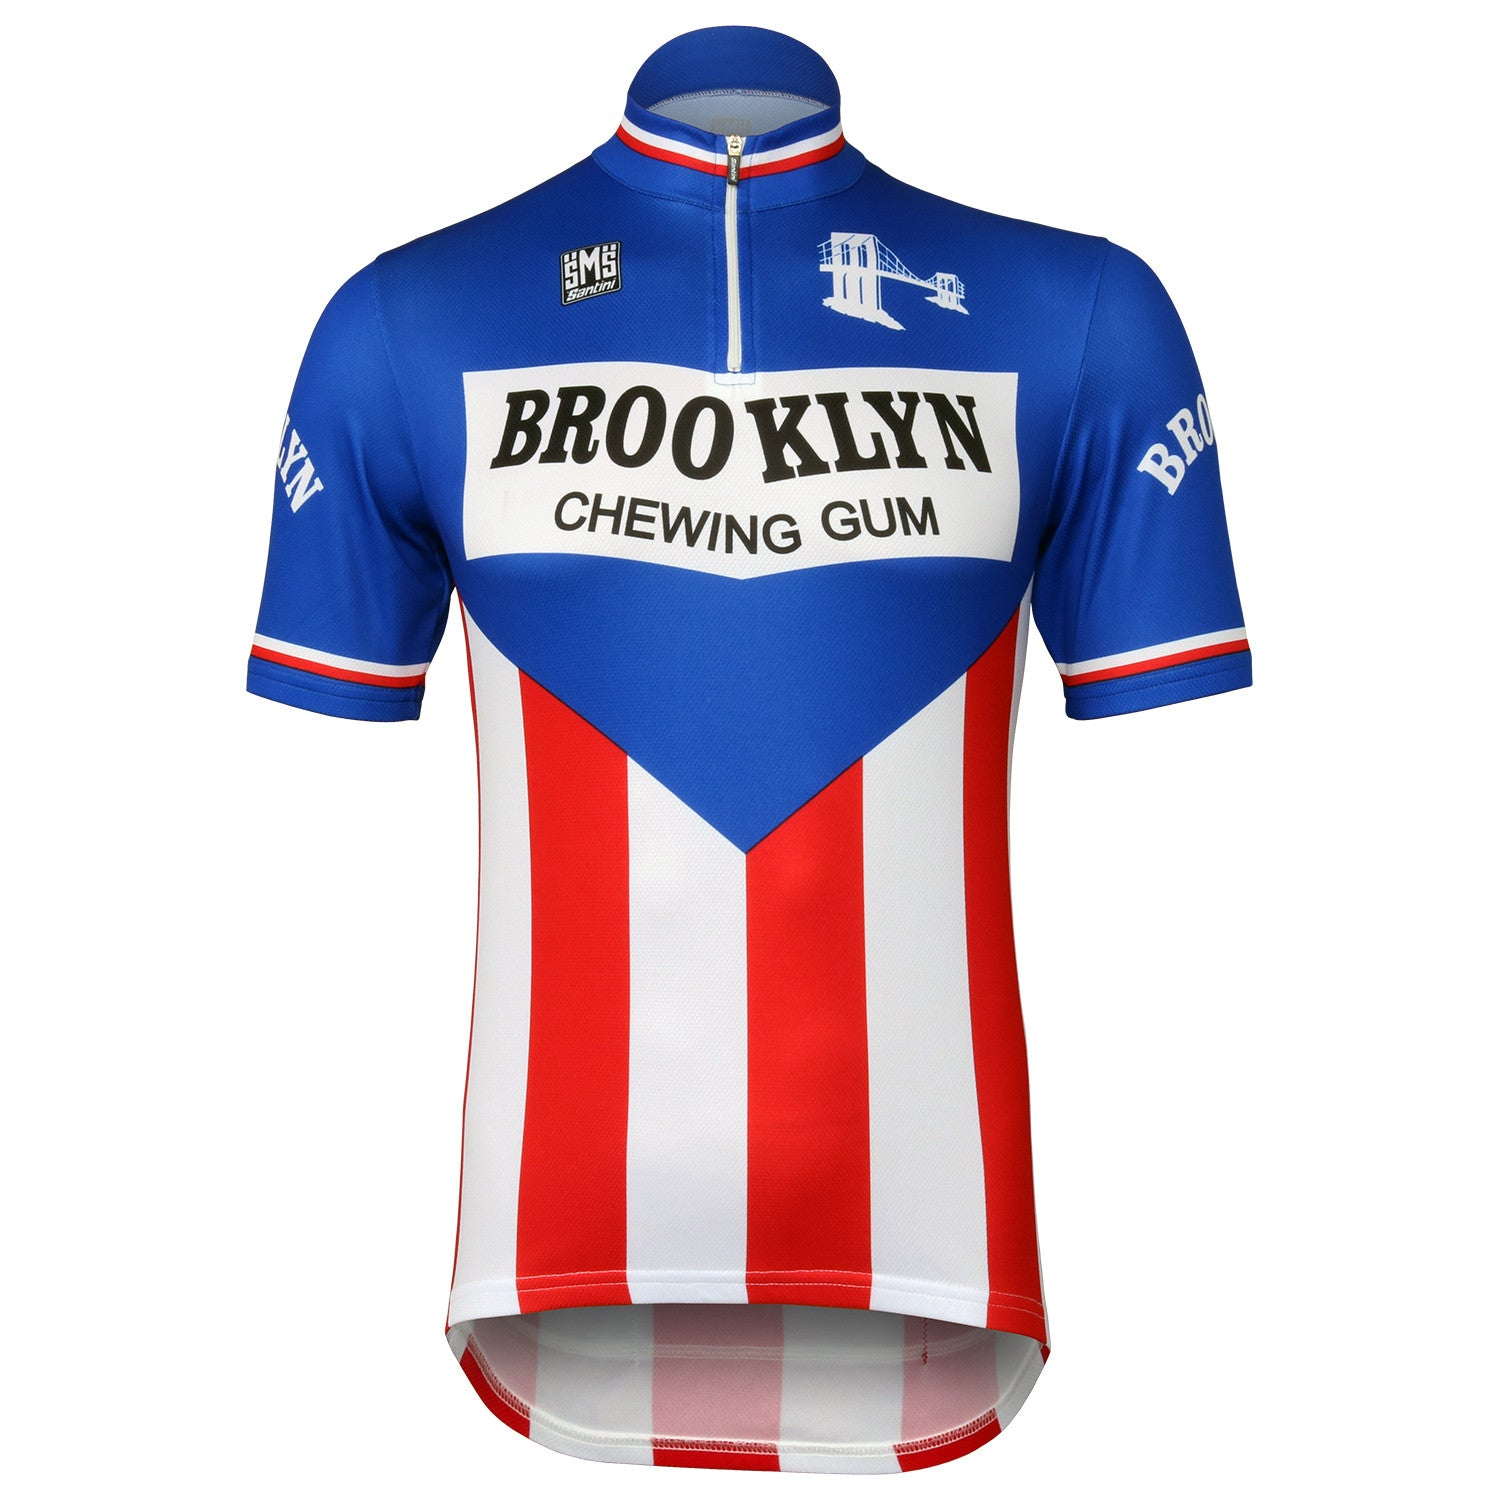 Brooklyn Retro Jersey - Short Sleeve